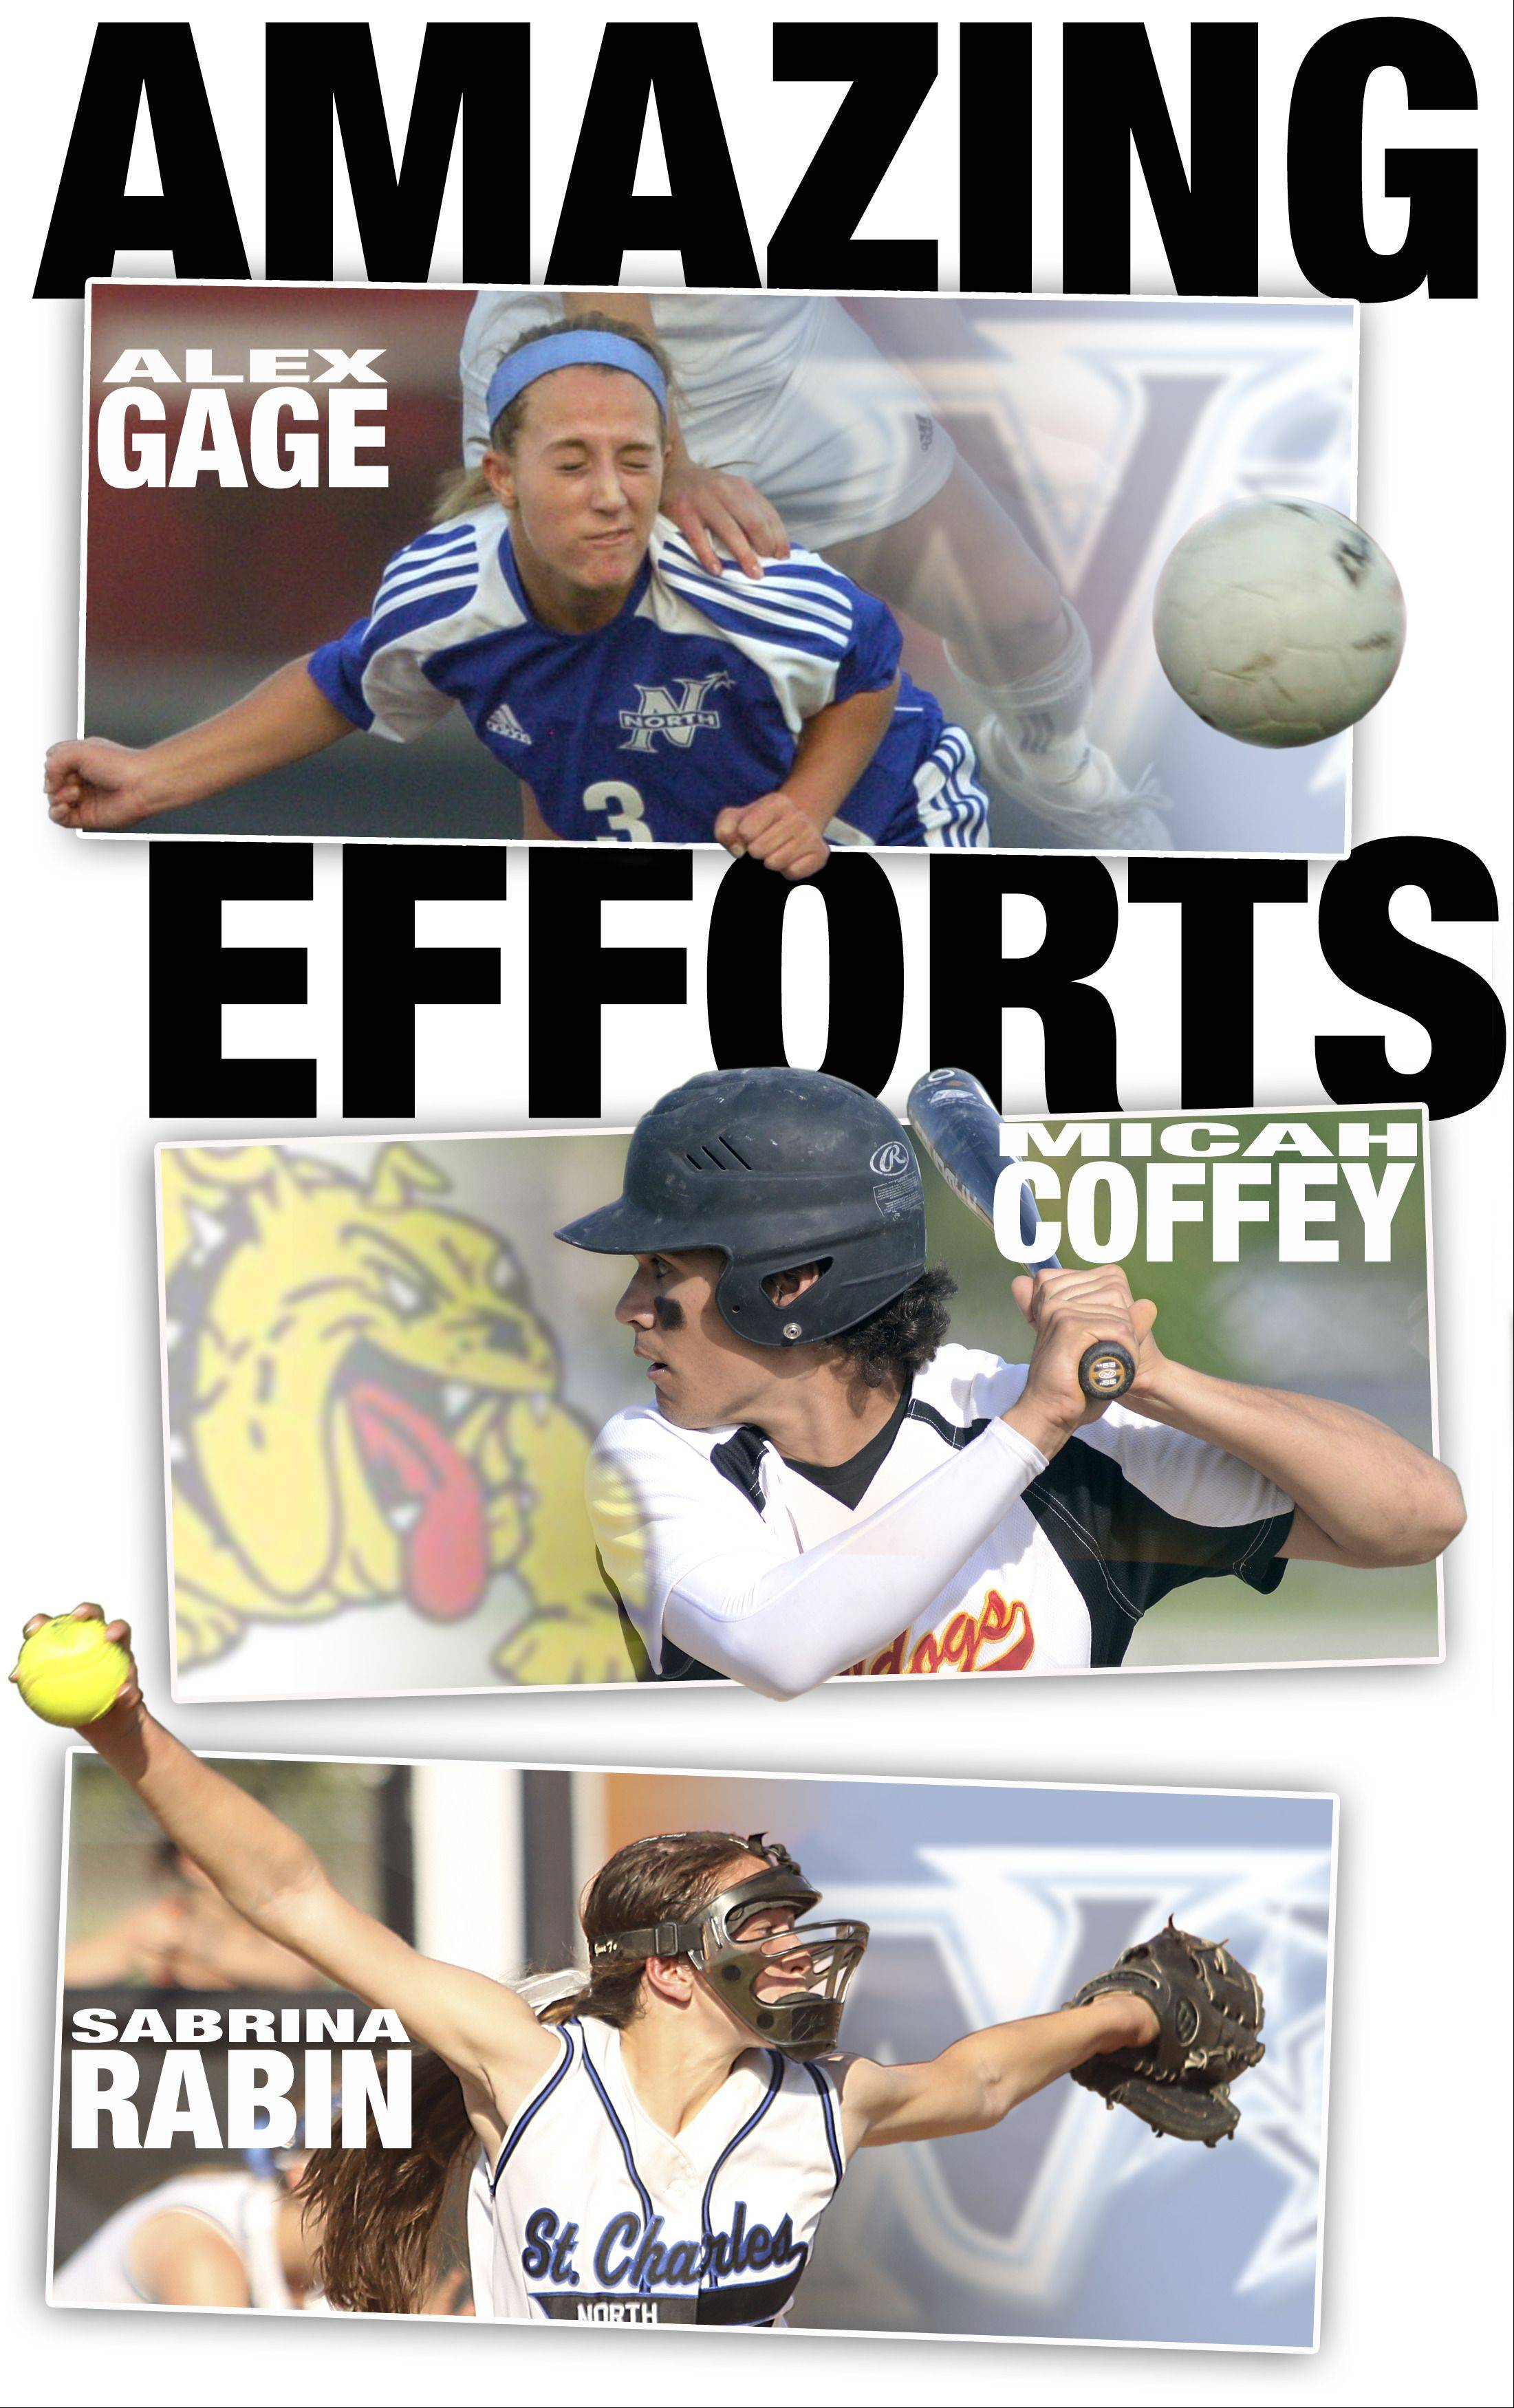 Tri-Cities All-Area Team Captains for Spring 2013 are Alex Gage, Micah Coffey, and Sabrina Rabin.